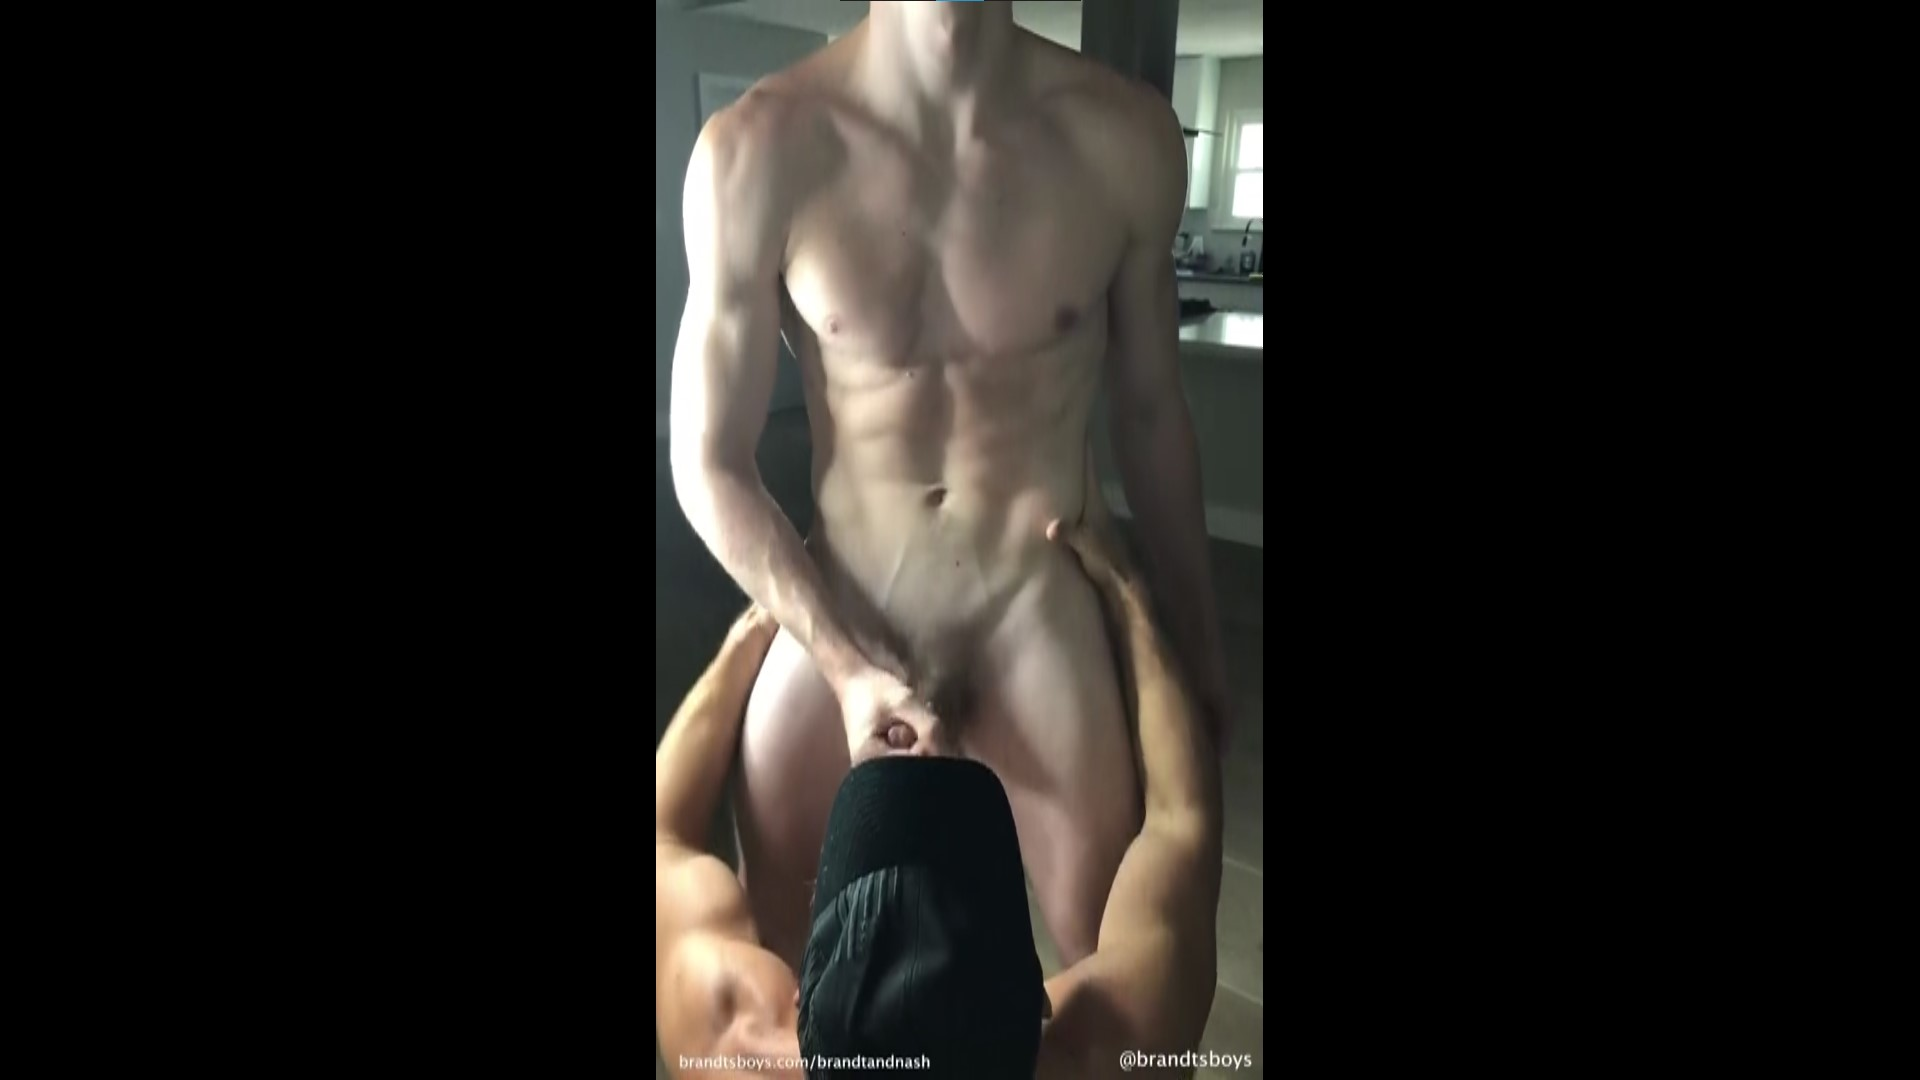 Jordan films Nash and Chase while giving them commands - JordanxBrandt - BrandtandNash - ChasexBrandt